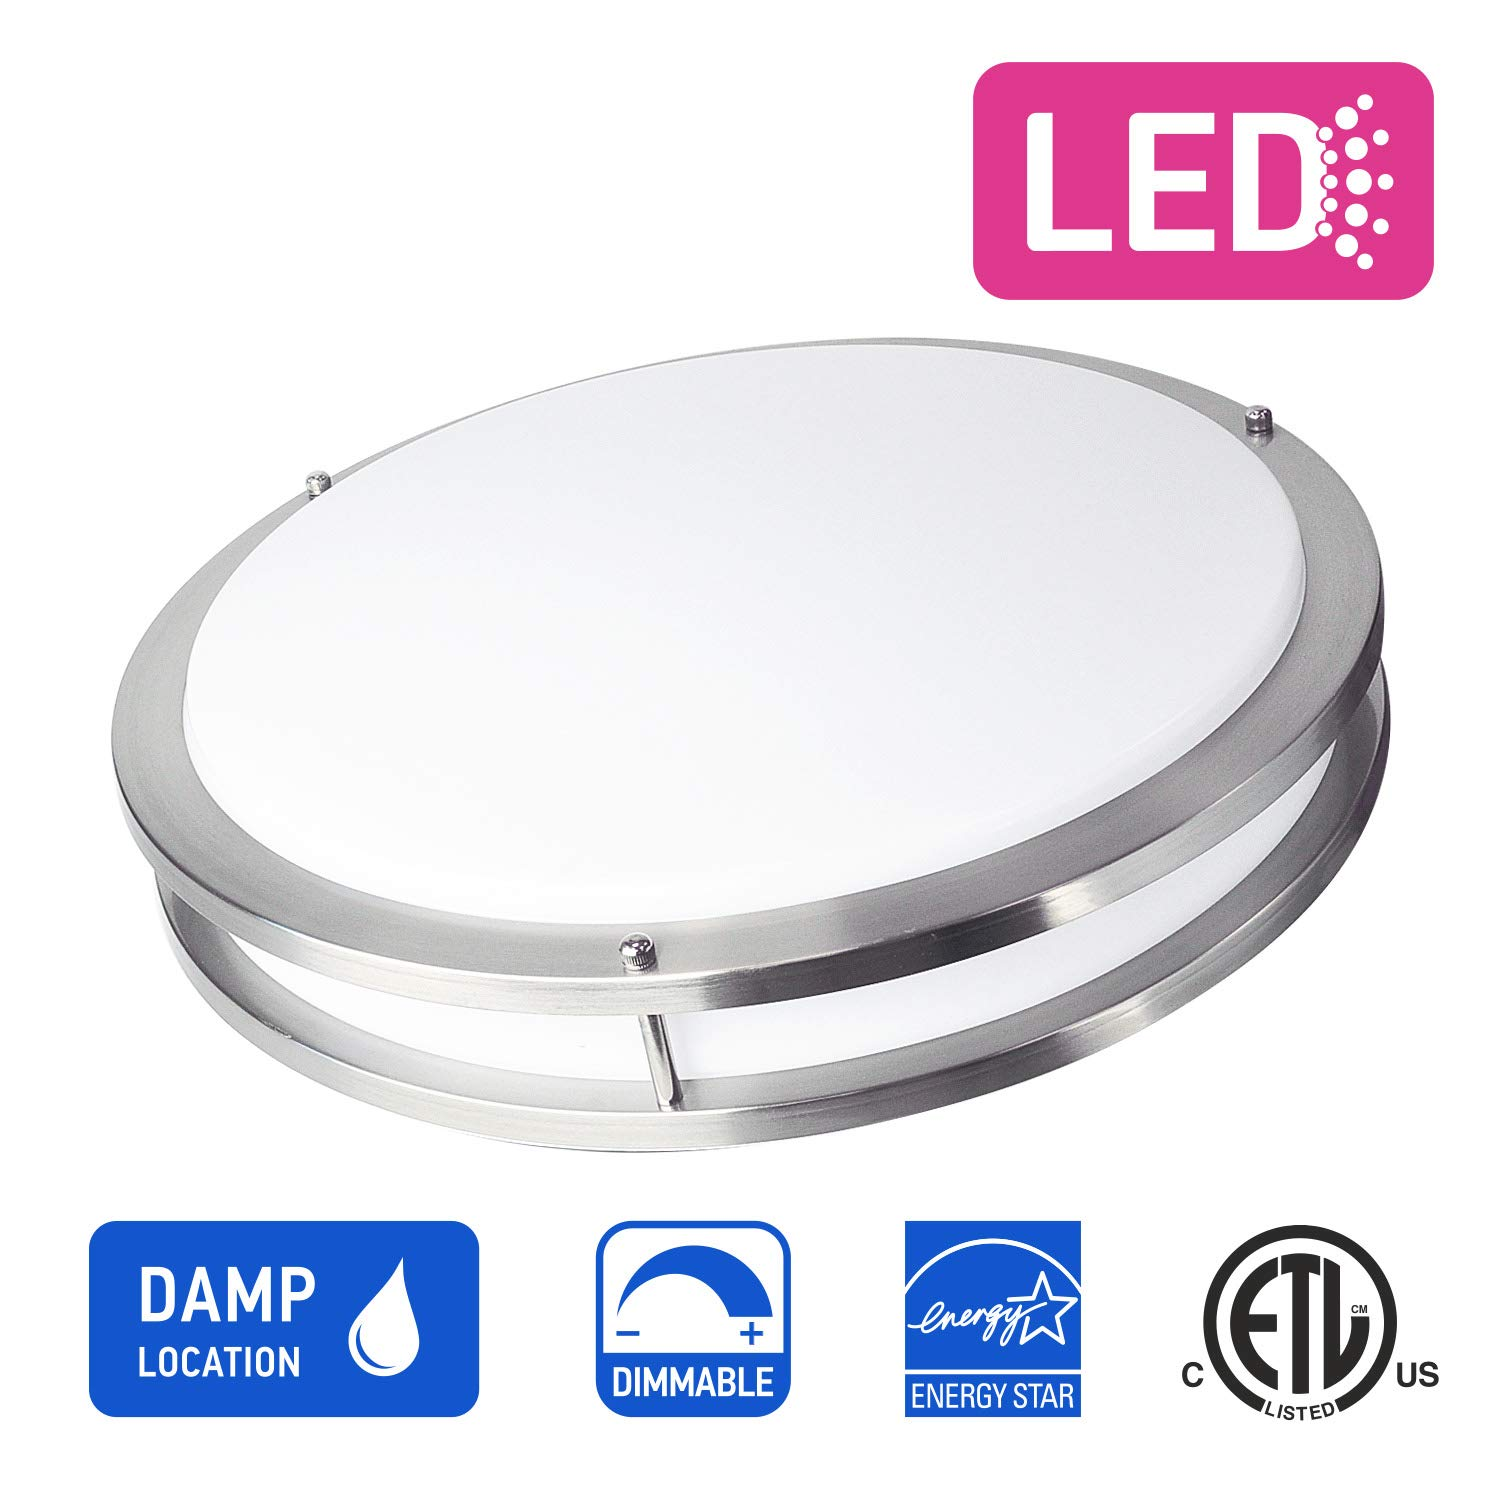 OSTWIN 18'' Large Size LED Ceiling Light Fixture Flush Mount, Dimmable, Round 28 Watt (180W Repl.) 5000K Daylight, 1960 Lm, Nickel Finish with Acrylic Shade ETL and Energy Star Listed by OSTWIN (Image #3)